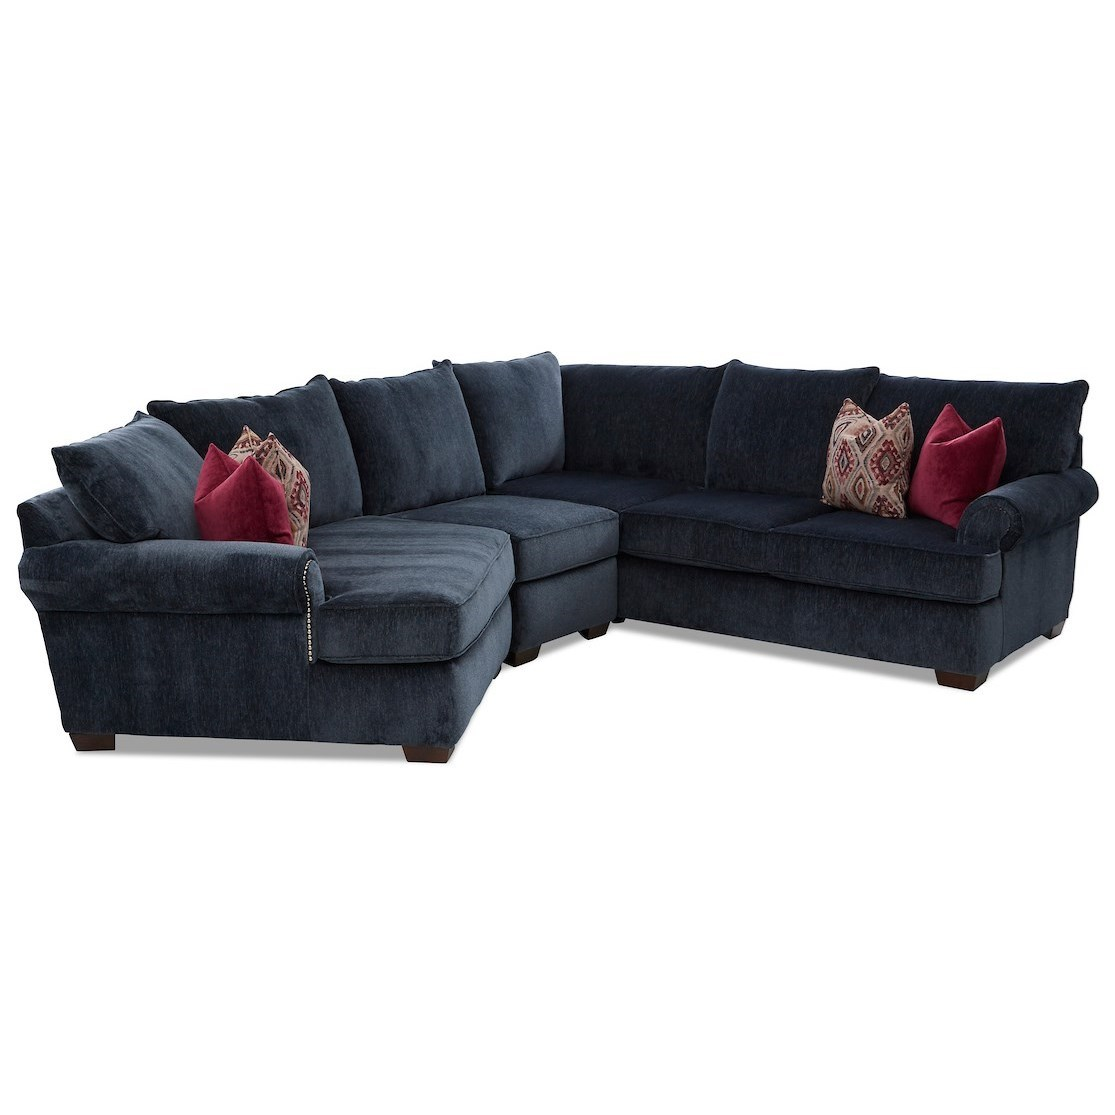 Ginger 4-Seat Sectional Sofa w/ LAF Cuddler Chair by Klaussner at Northeast Factory Direct